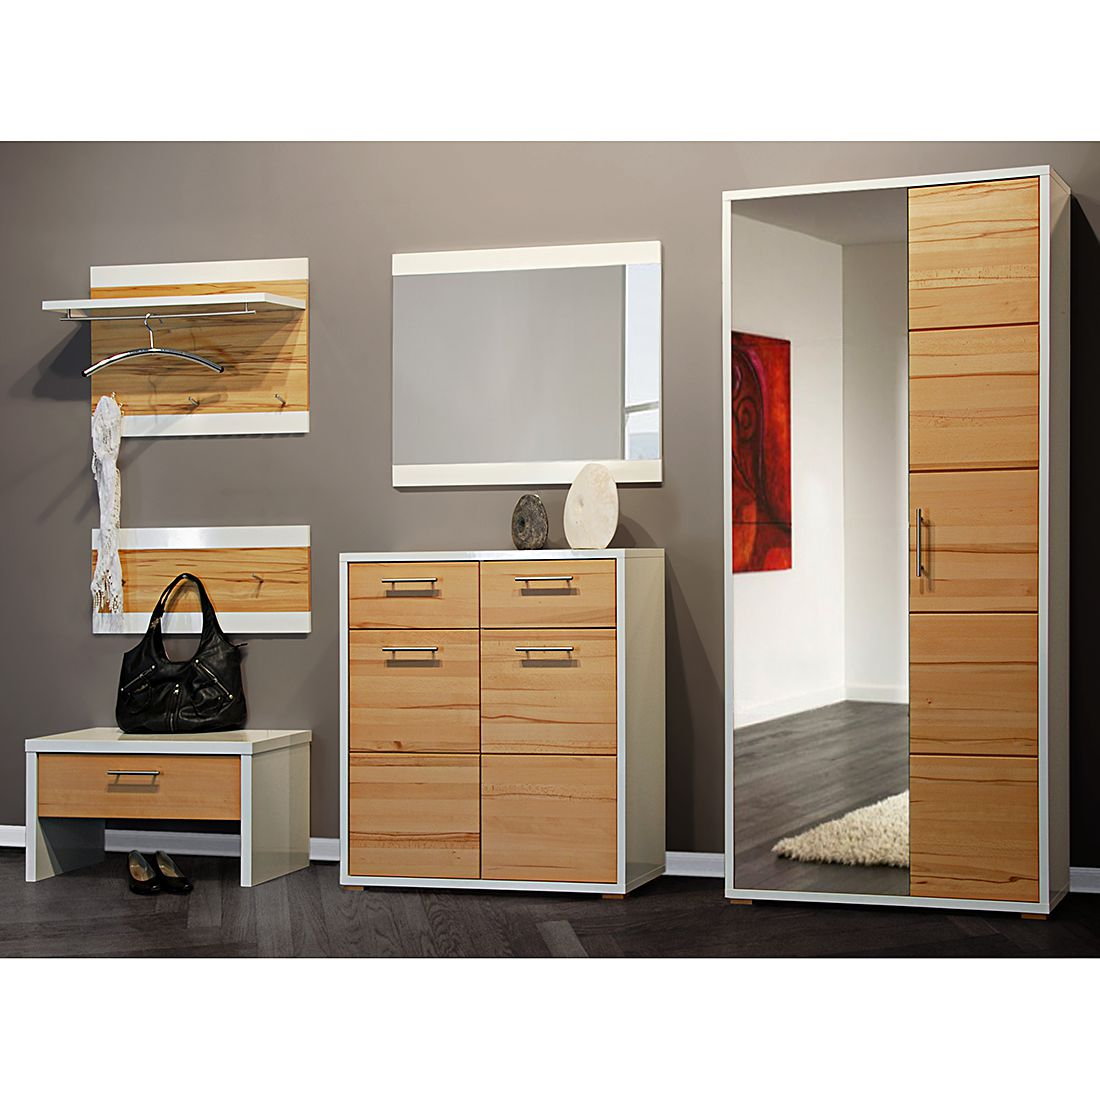 garderobenset riva 4 kernbuche teilmassiv hochglanz wei. Black Bedroom Furniture Sets. Home Design Ideas